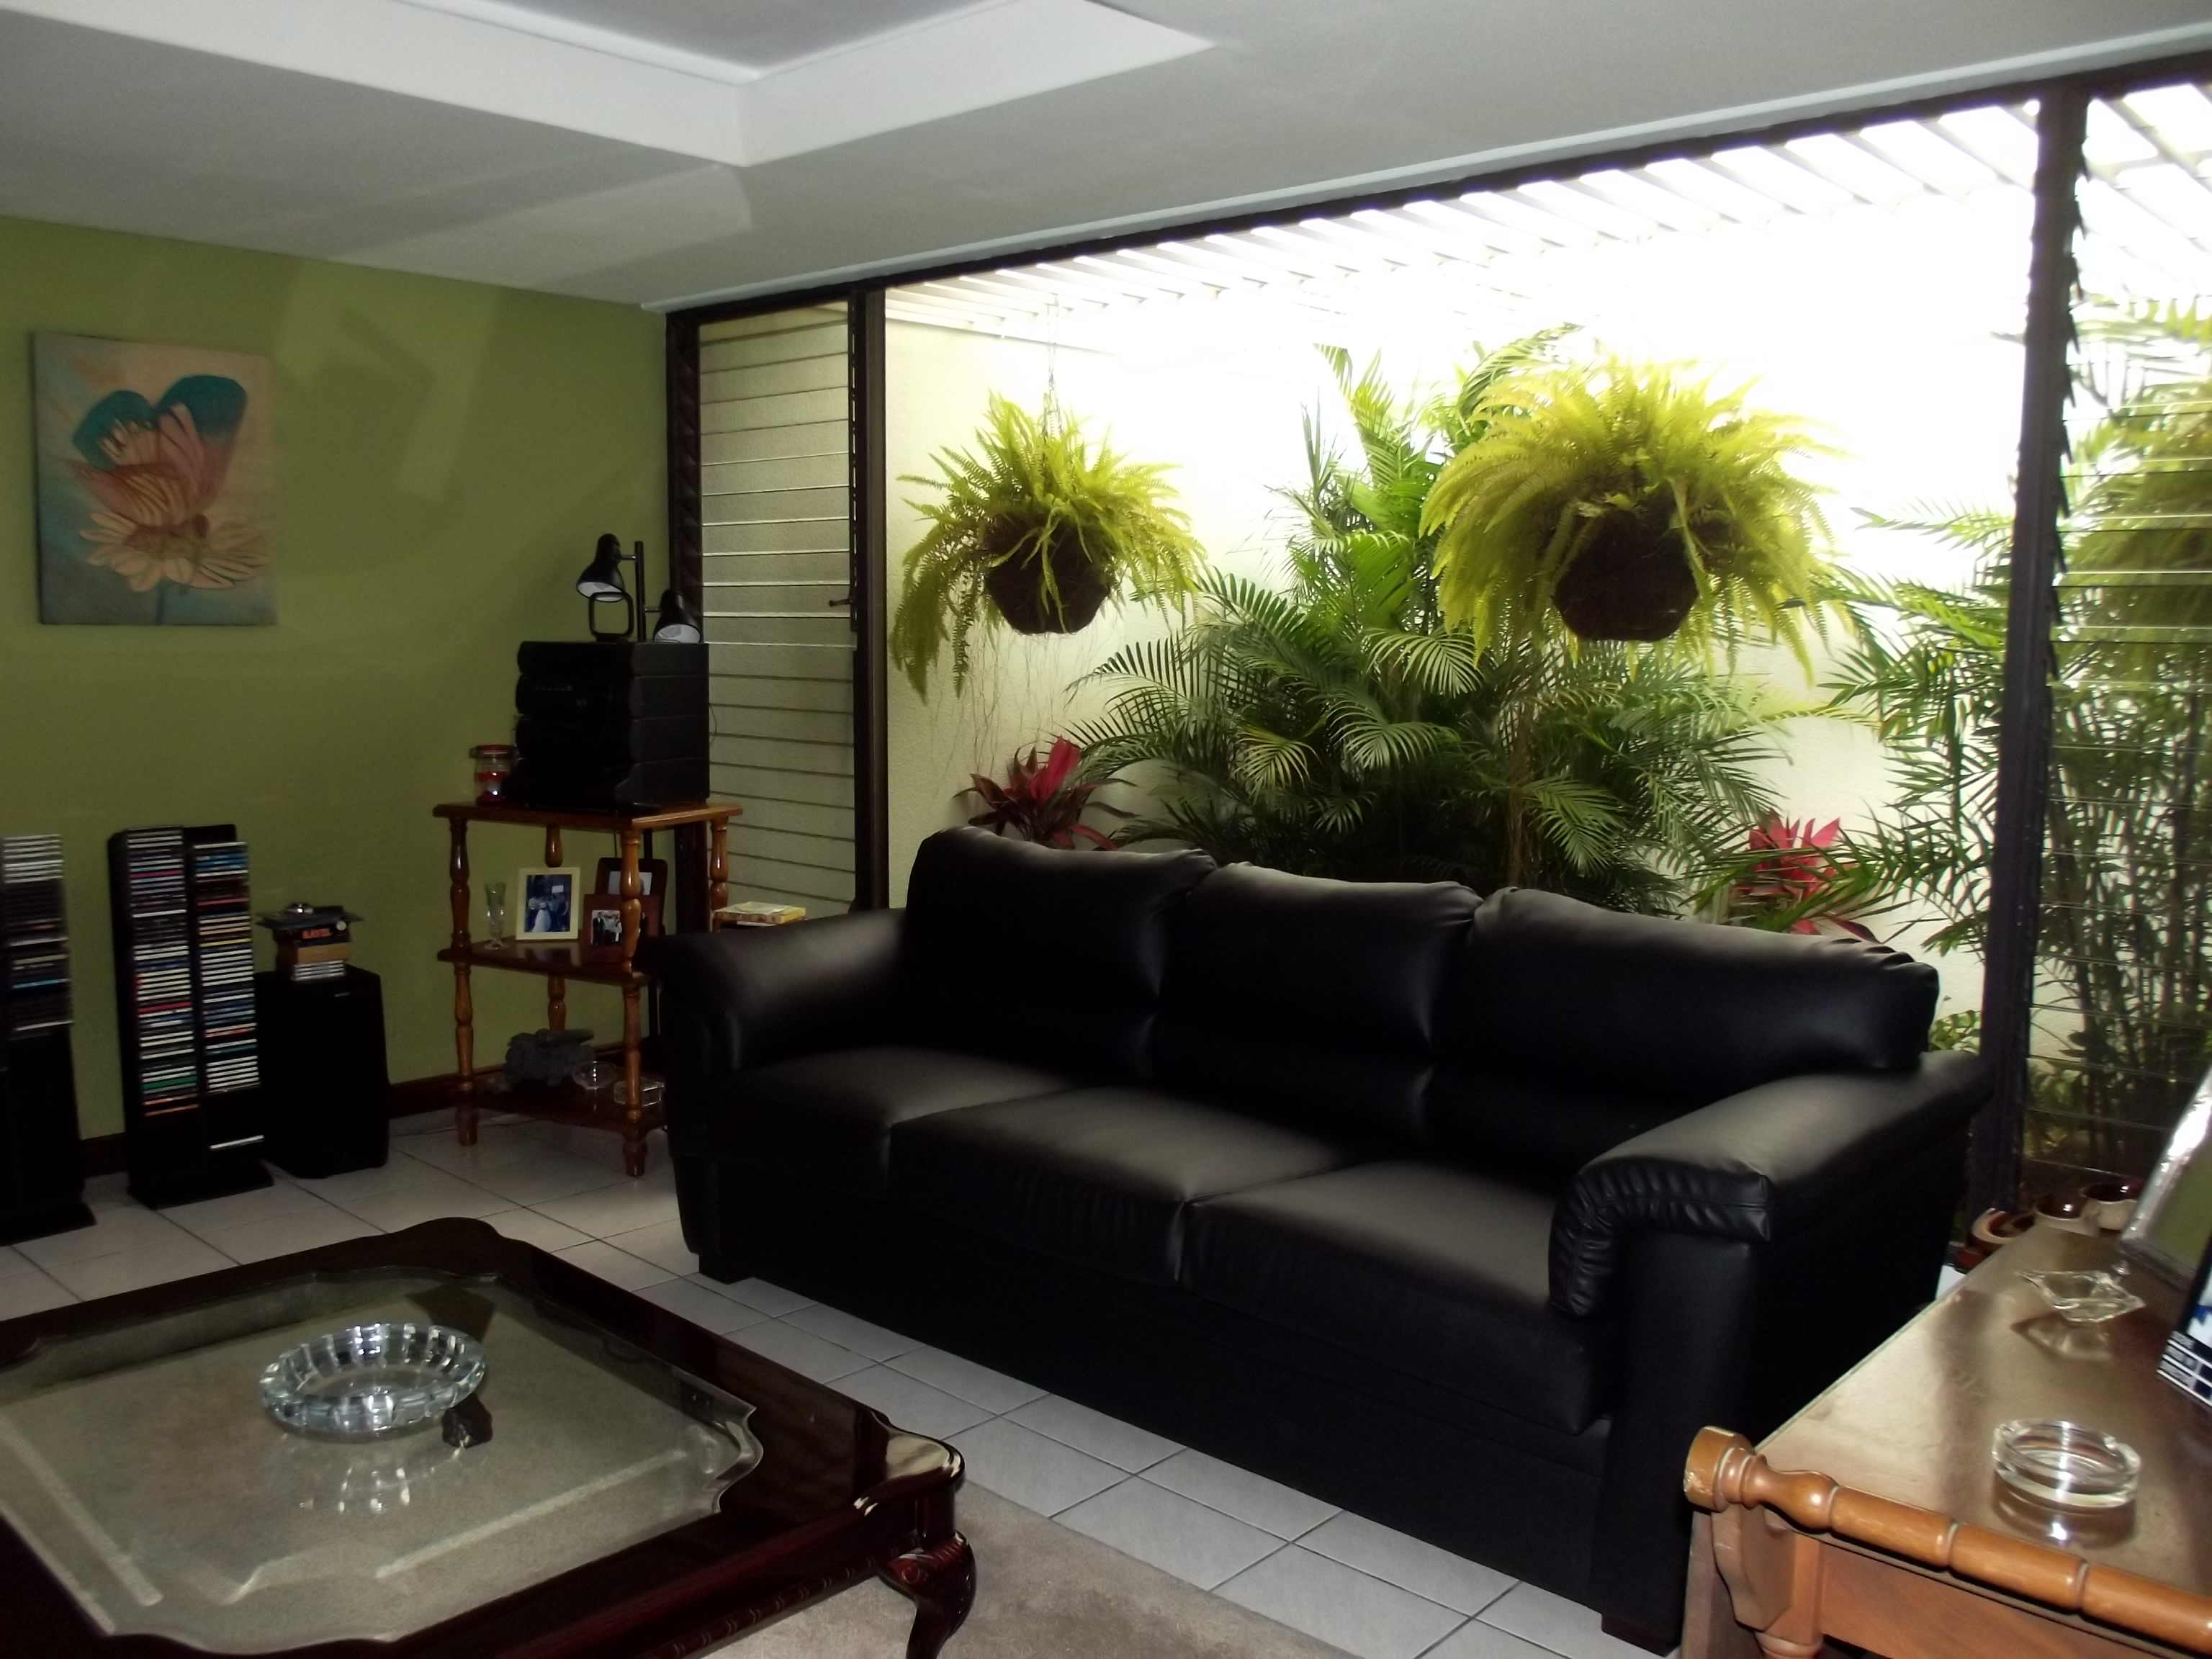 One level home with various green patios in Trejos.